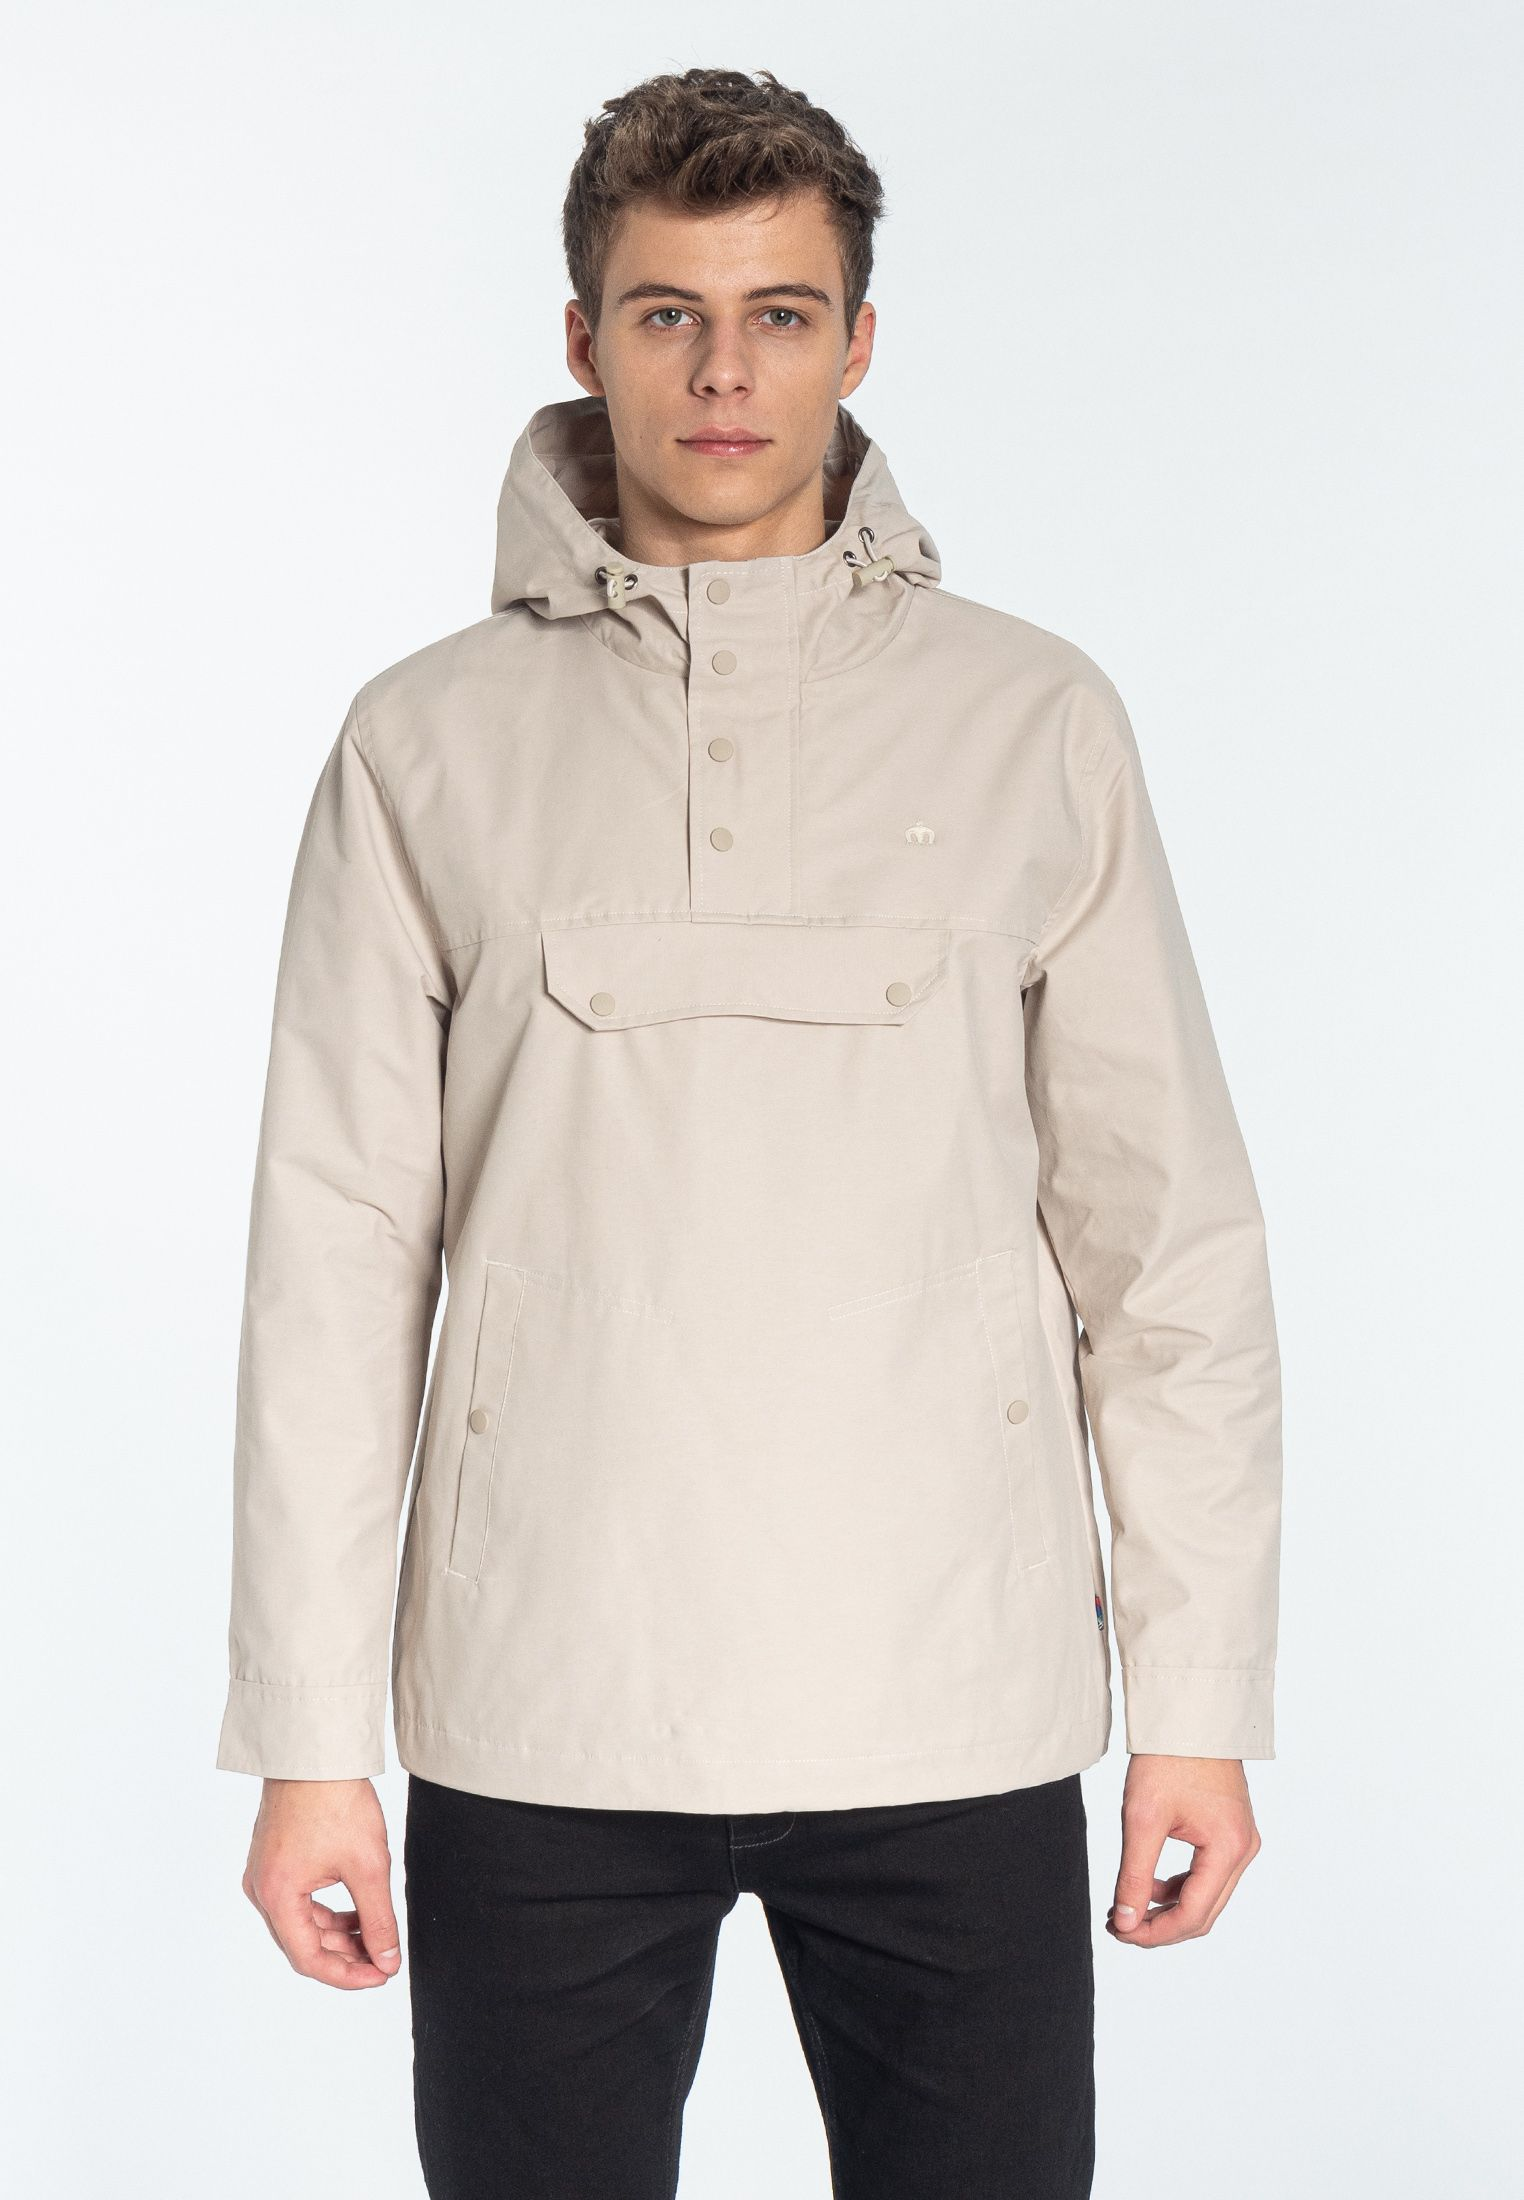 Shield Pullover hooded jacket in Stone